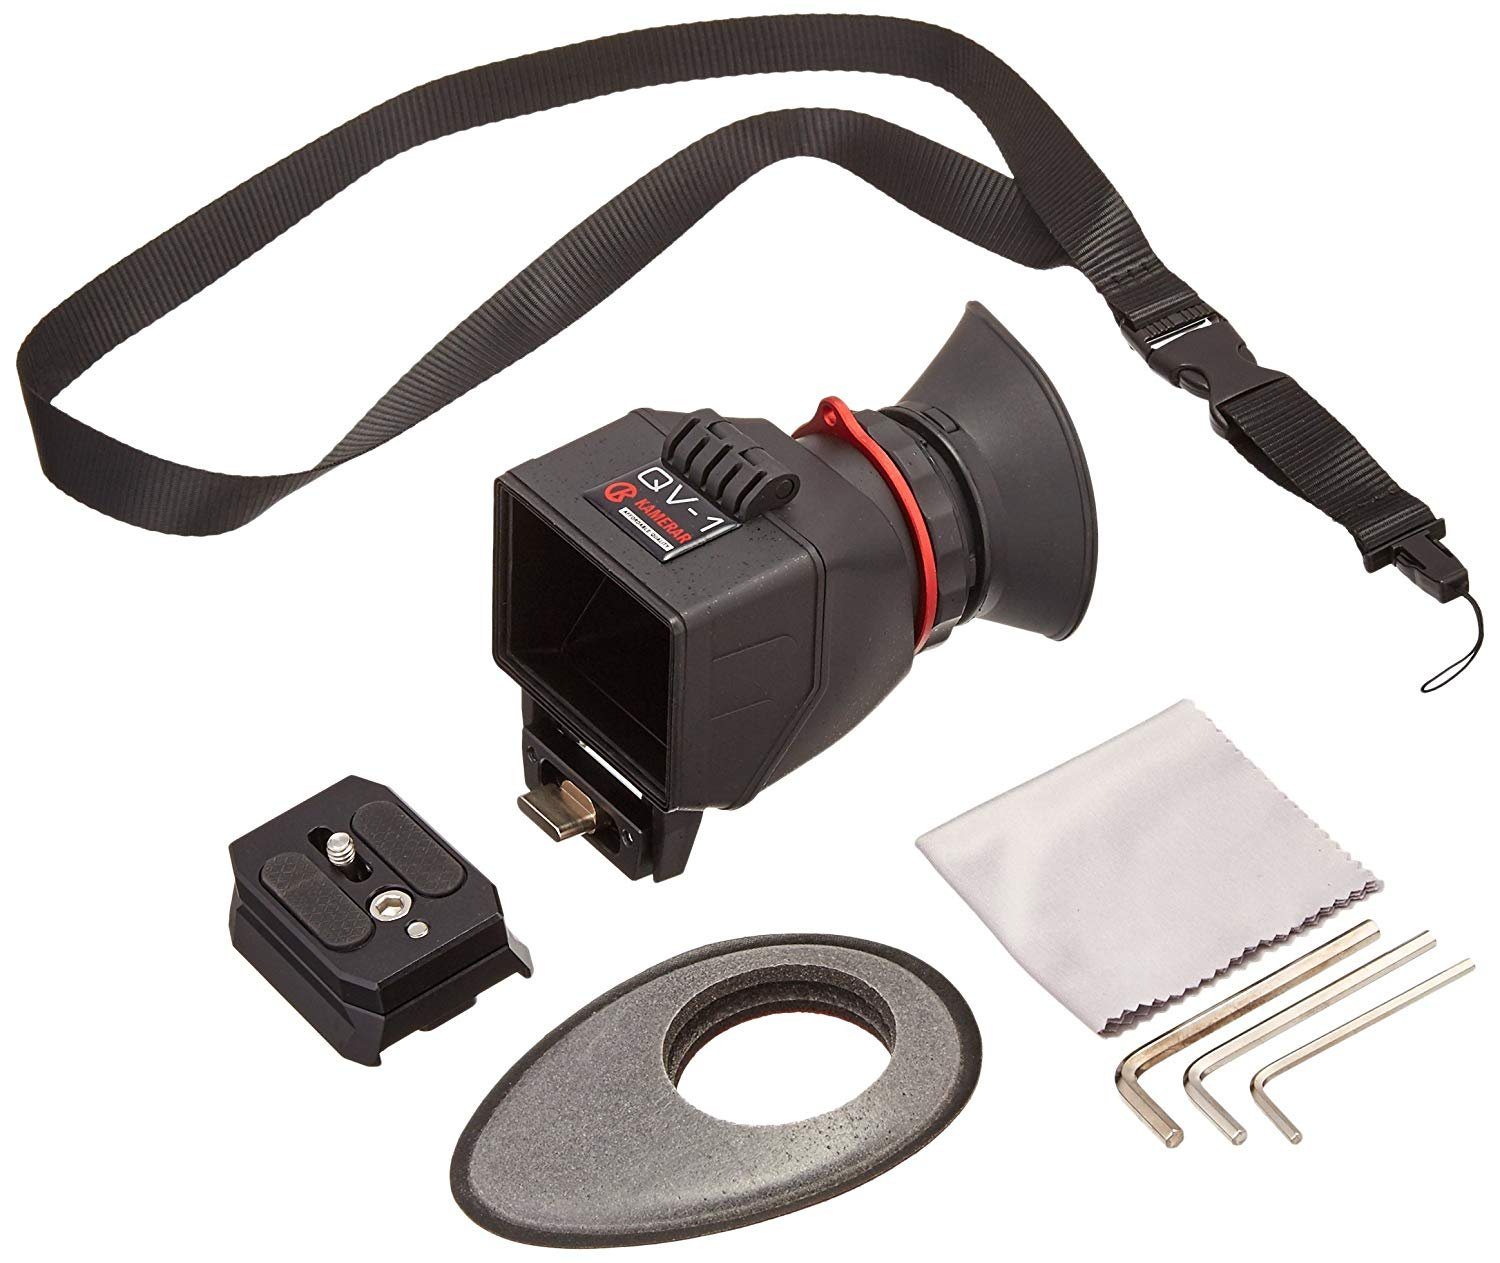 AUTHENTIC KAMARAR QV-1 M LCD VIEW FINDER FOR MIRRORLESS CAMERAS CANON T4I PANASONIC GH2 GH3 SONY A7 A7R by Kamerar